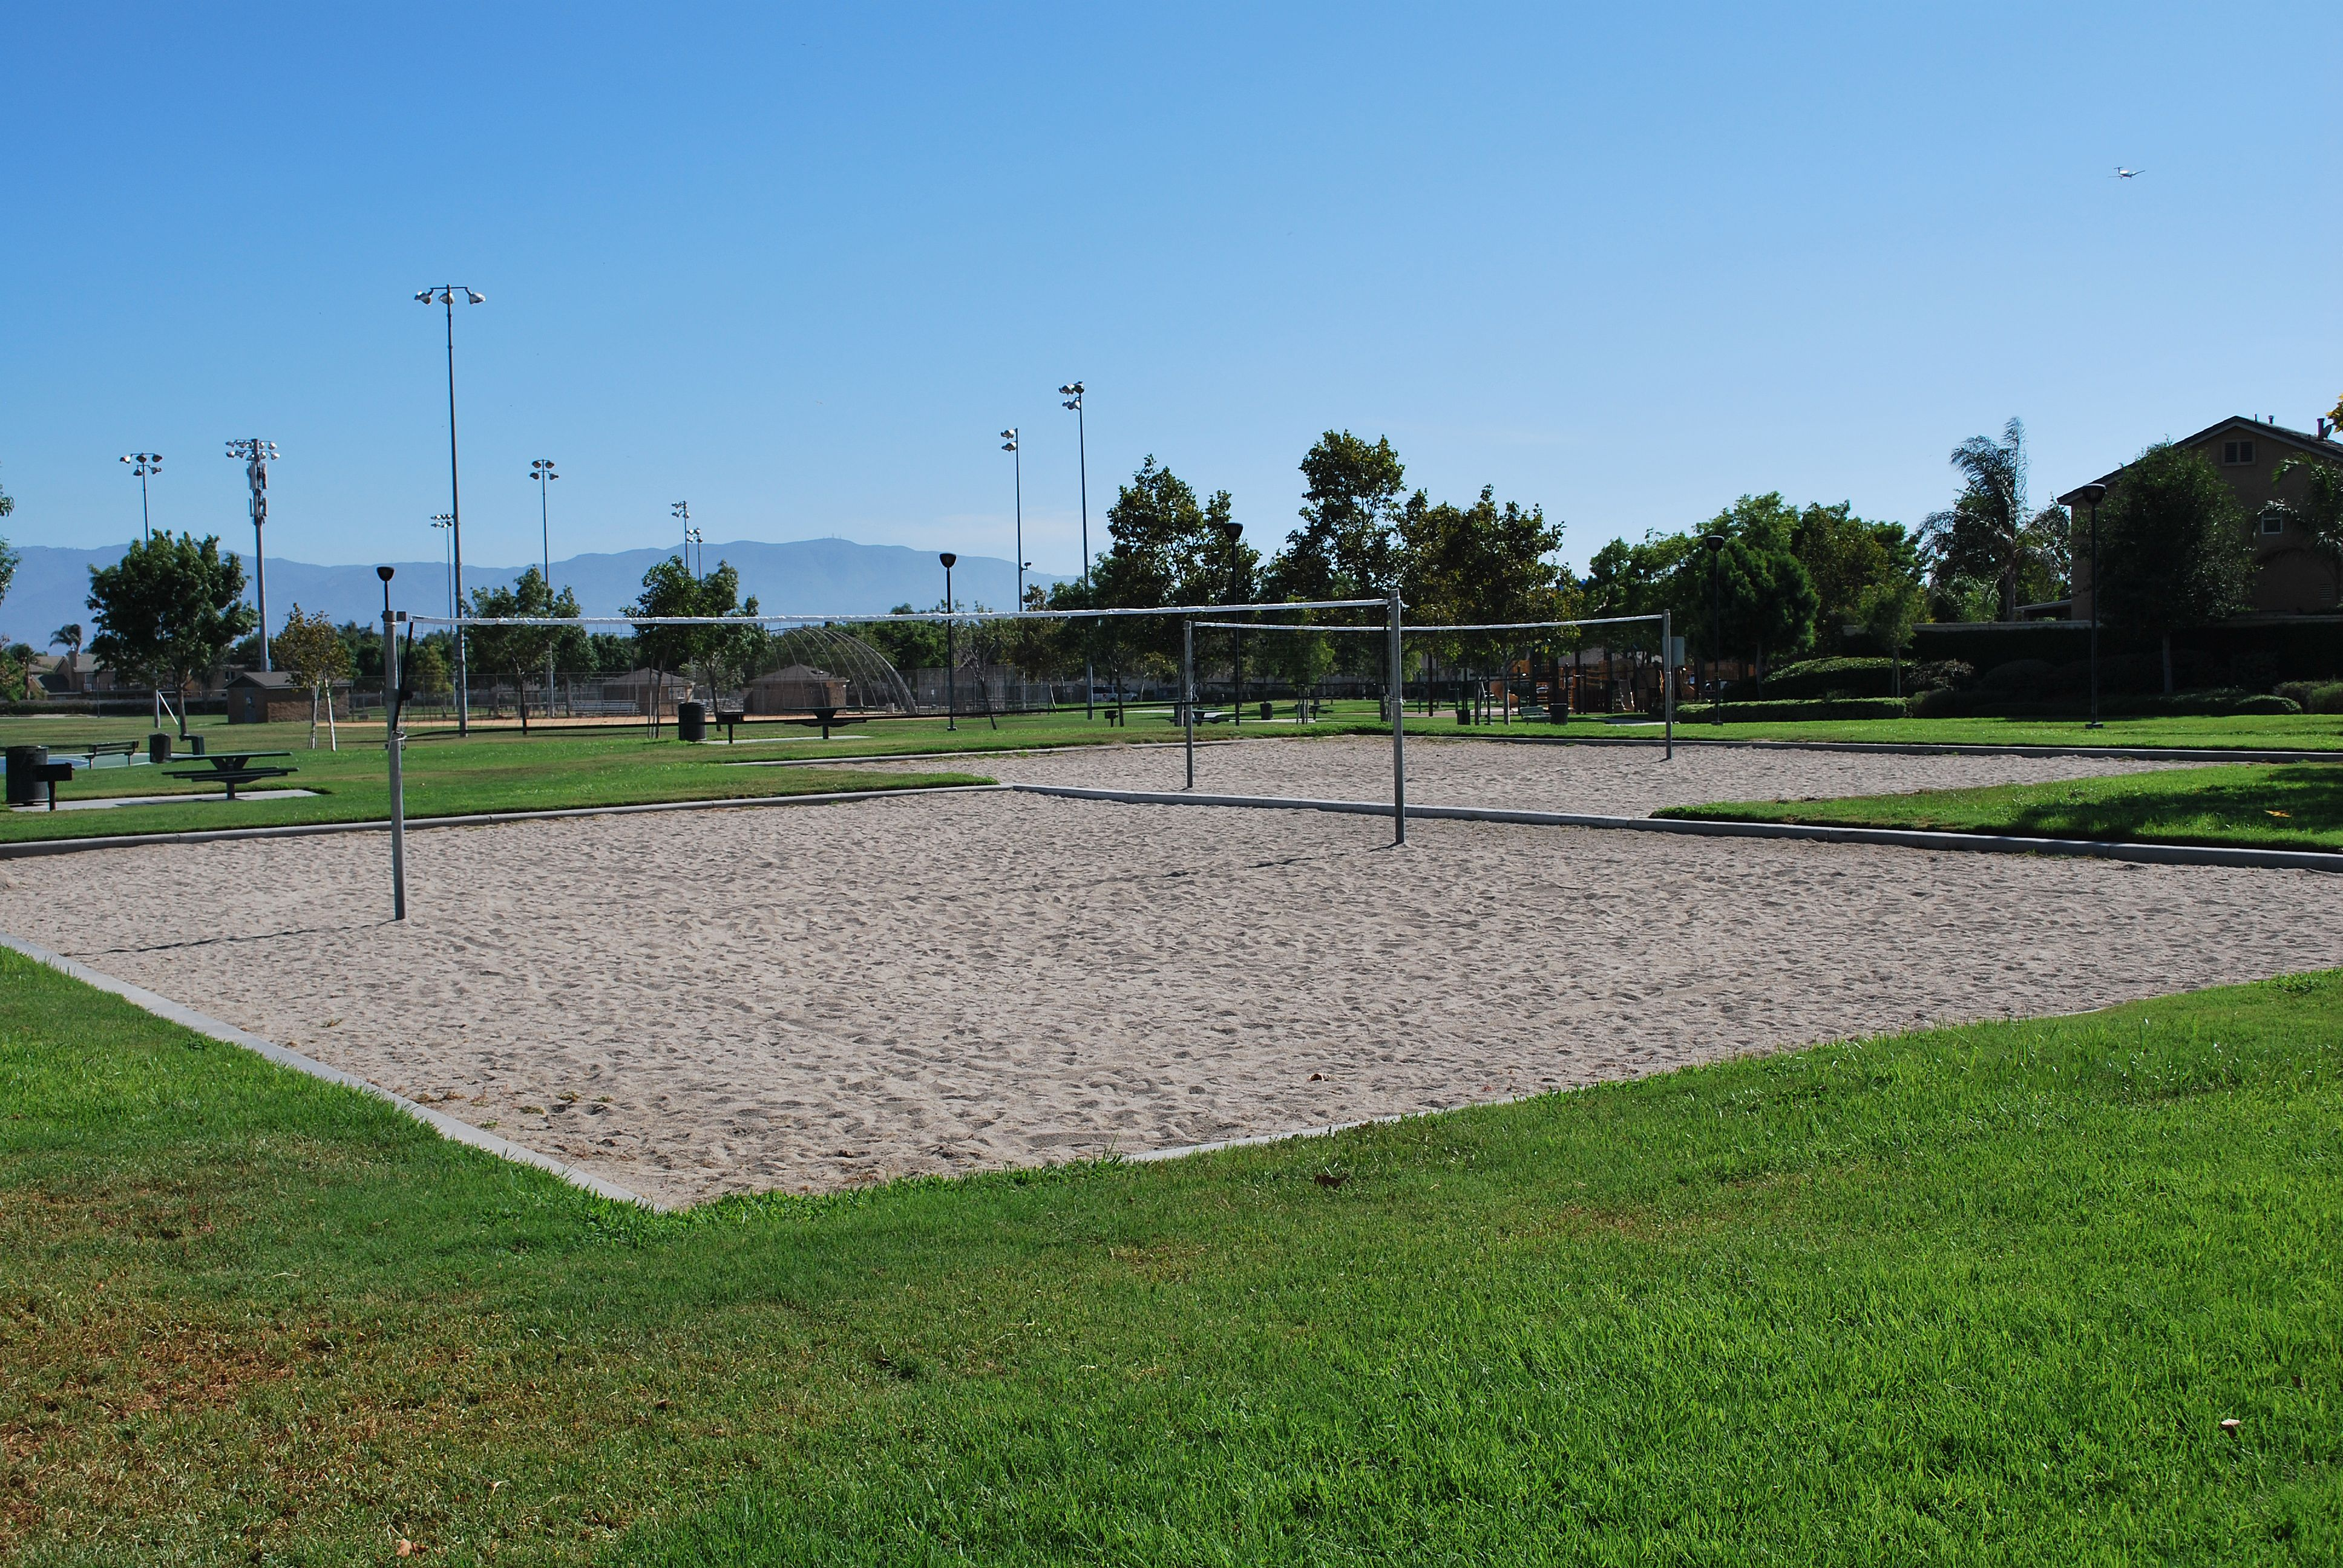 The Two Beach Volleyball Courts At Orchard Park In Eastvale California Playvolleyball Http Youreastvalerealtor Co Orchard Park Beach Volleyball Court Park